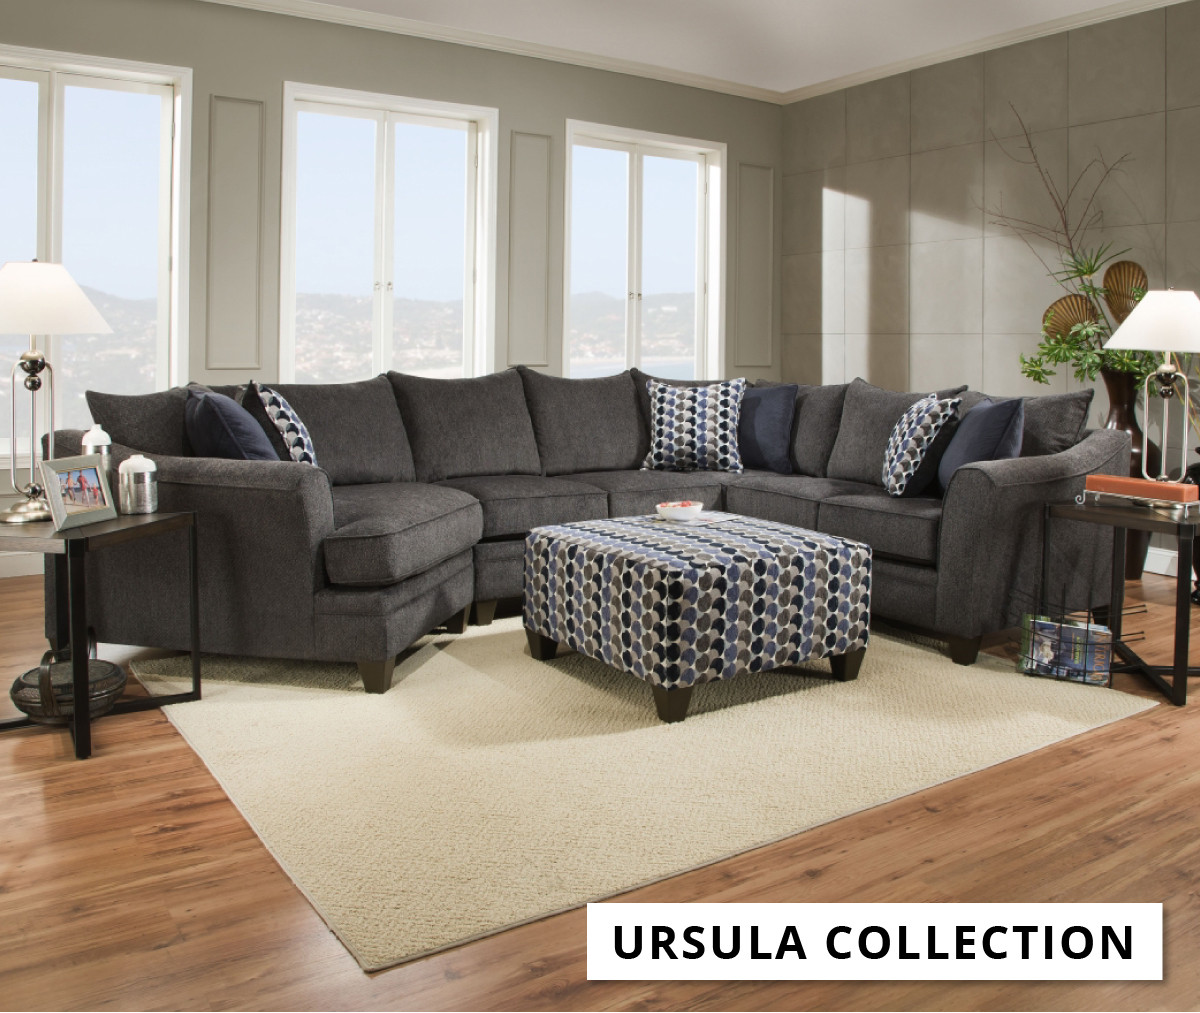 Best ideas about Living Room Couches . Save or Pin Living Room Furniture for Your Home Now.